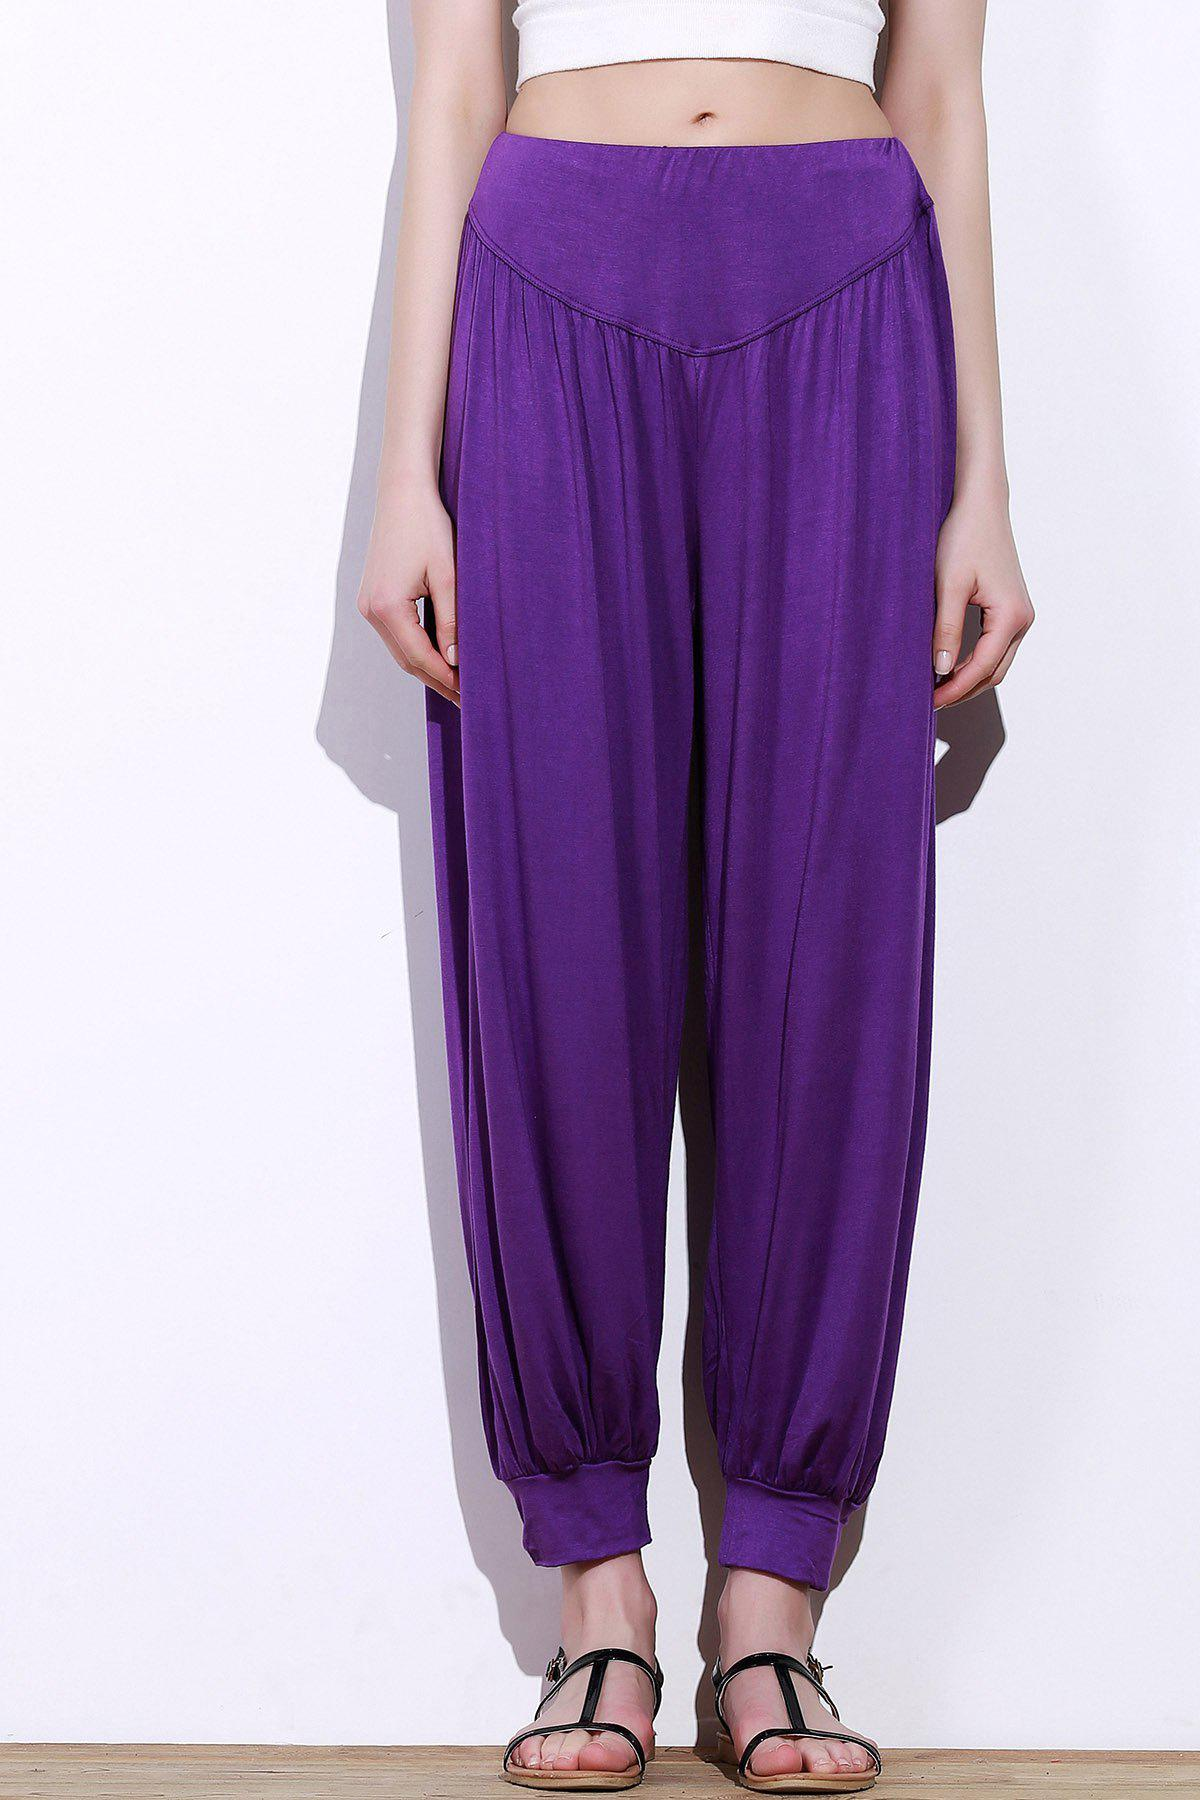 Stylish Elastic Waist Loose-Fitting Solid Color Women's Pants - PURPLE L